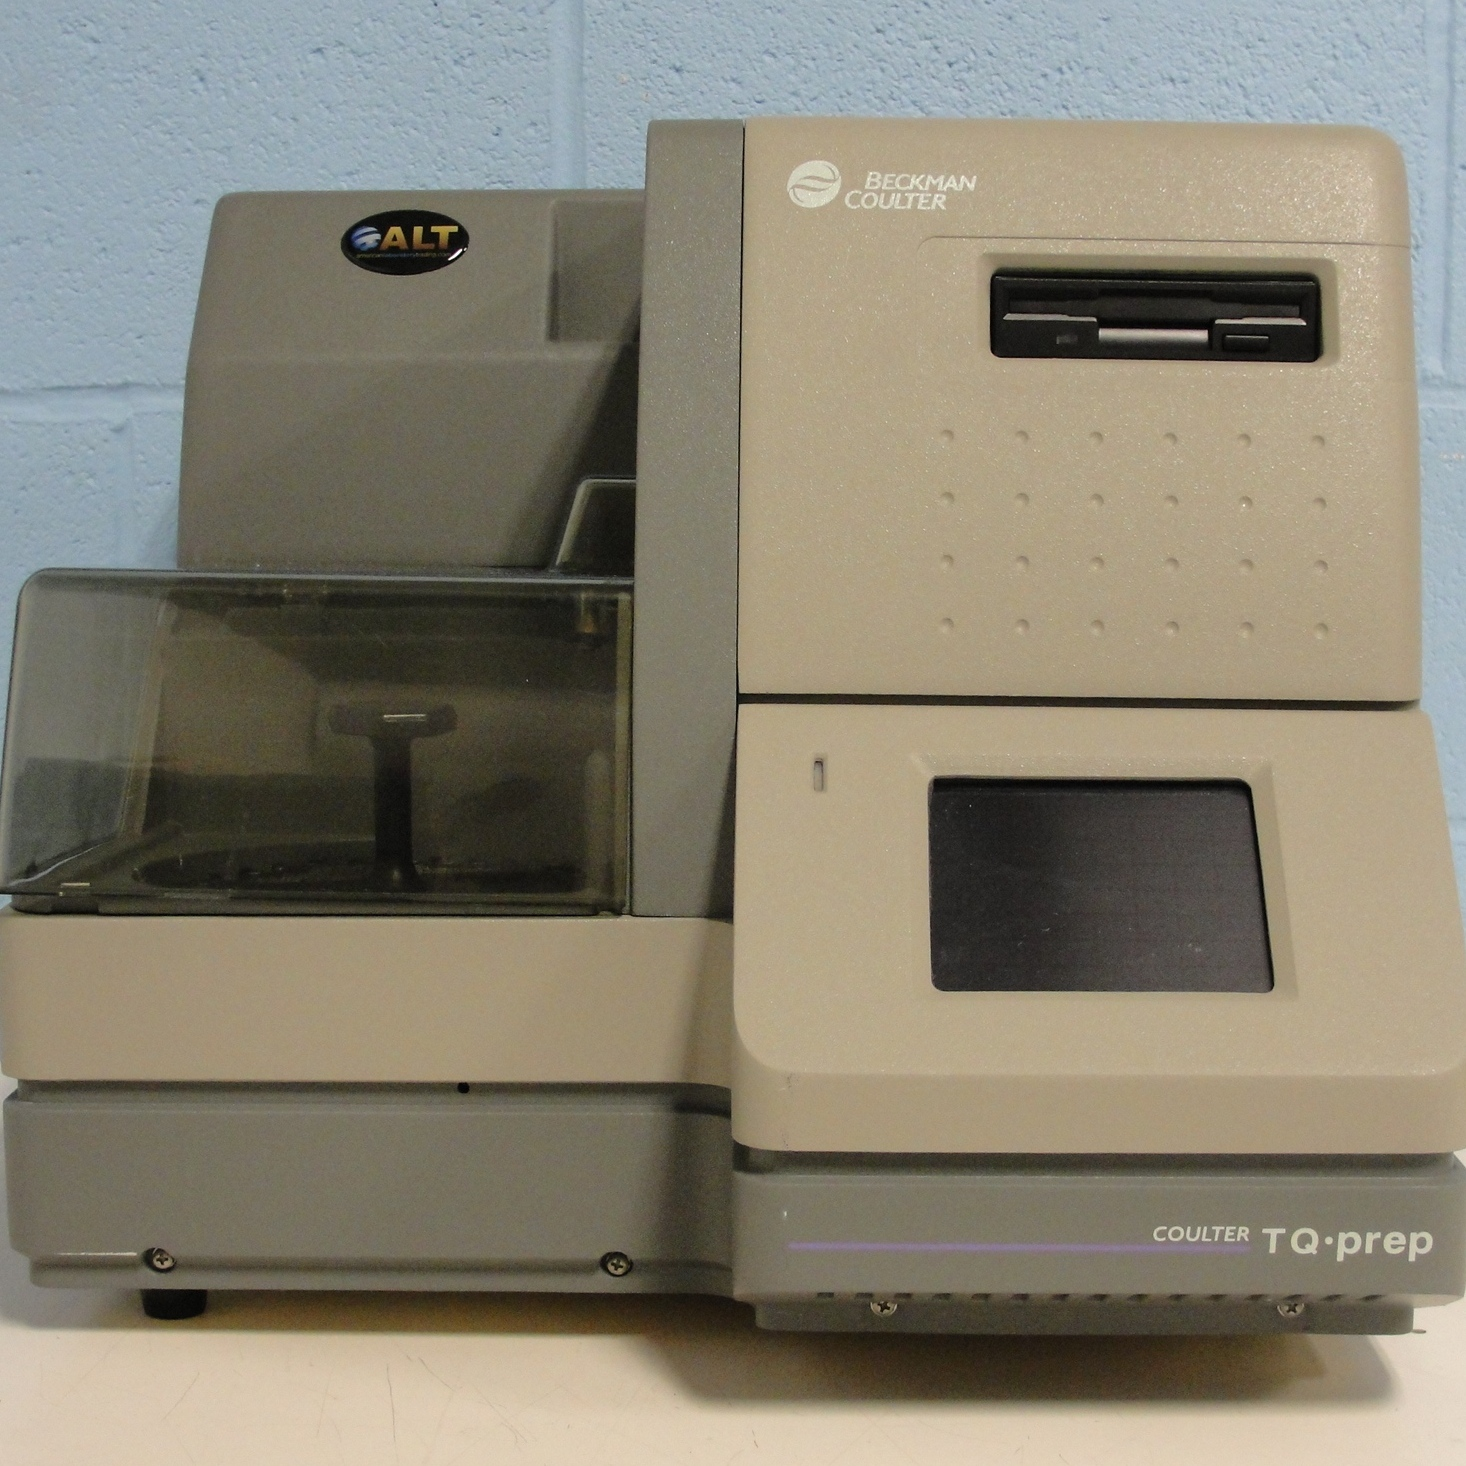 Beckman Coulter TQ-Prep Workstation Image